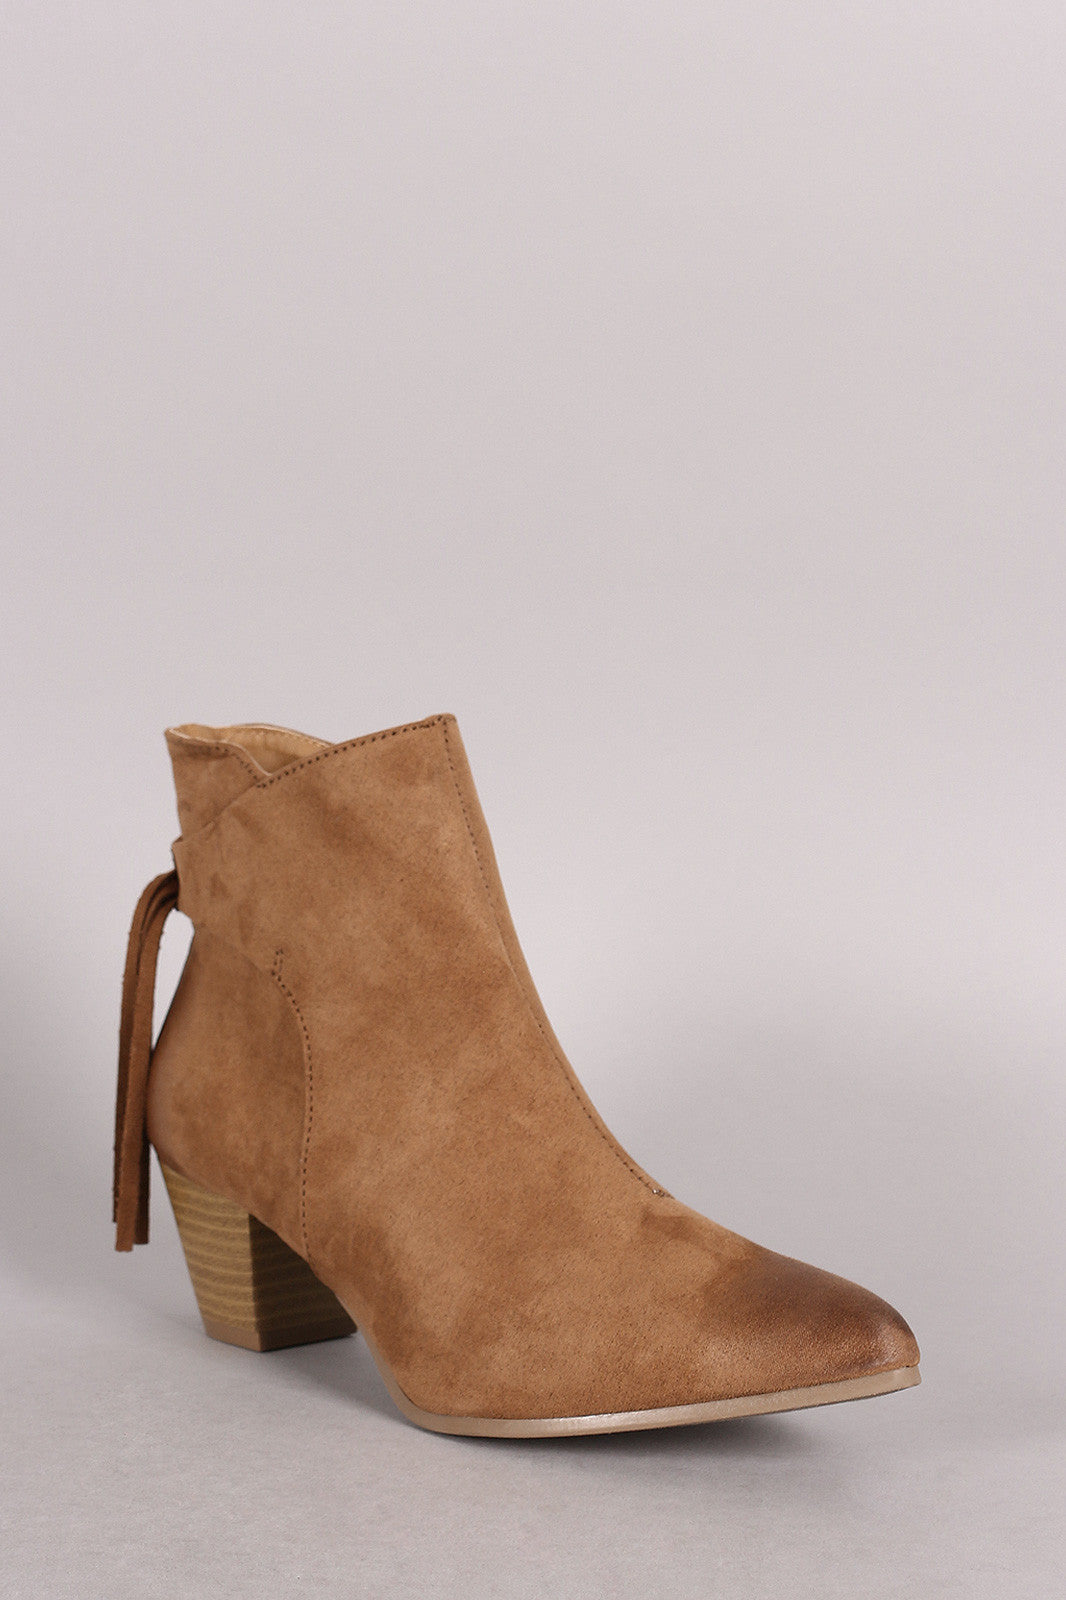 Qupid Suede Fringe Pointy Toe Chunky Heeled Booties - Thick 'N' Curvy Shop - 2